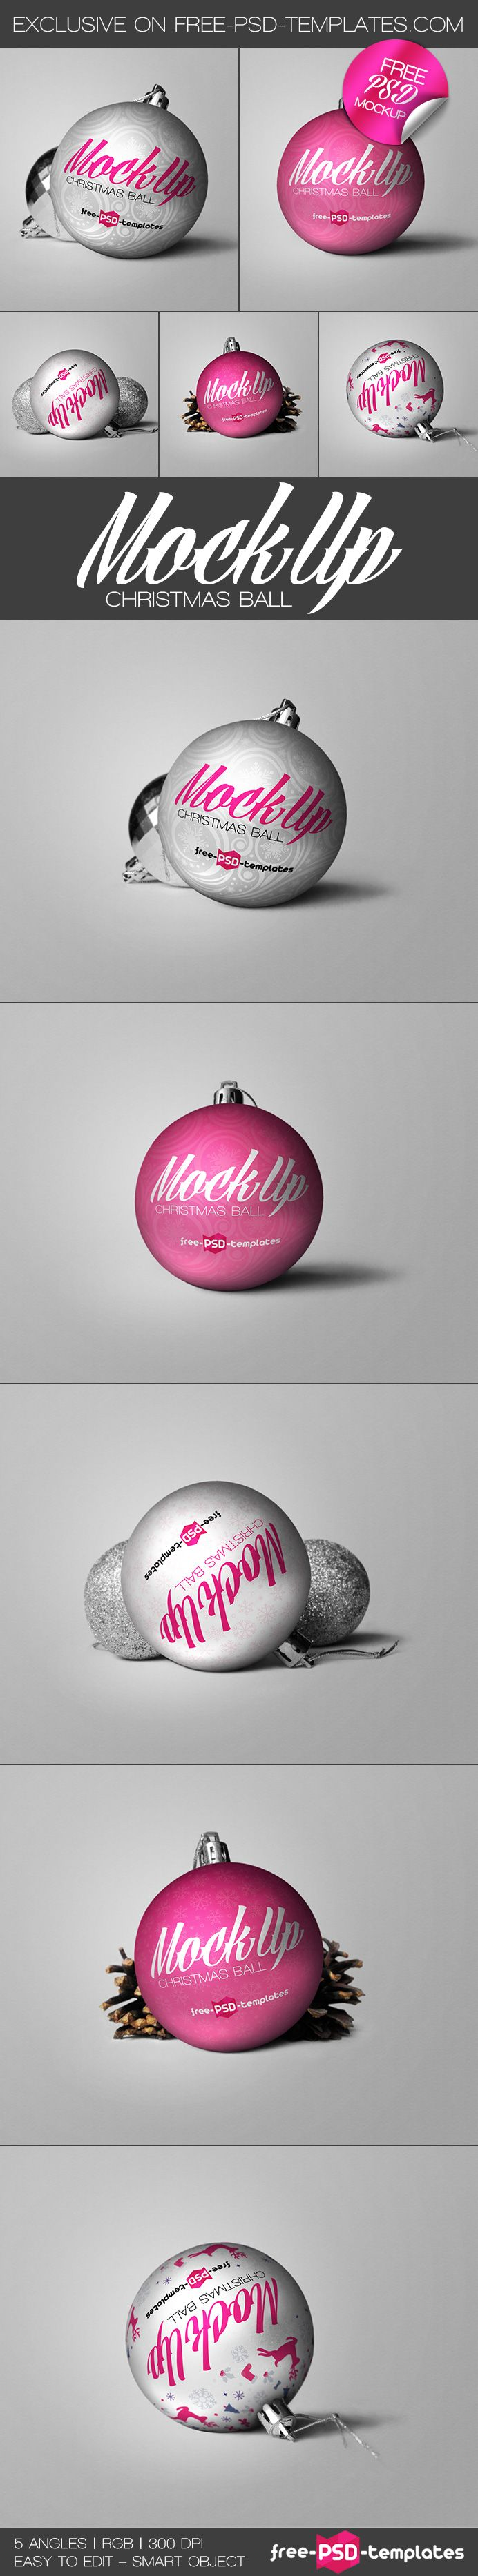 Free Christmas Ball Mockup (145 MB) | free-psd-templates.com | #free #photoshop #mockup